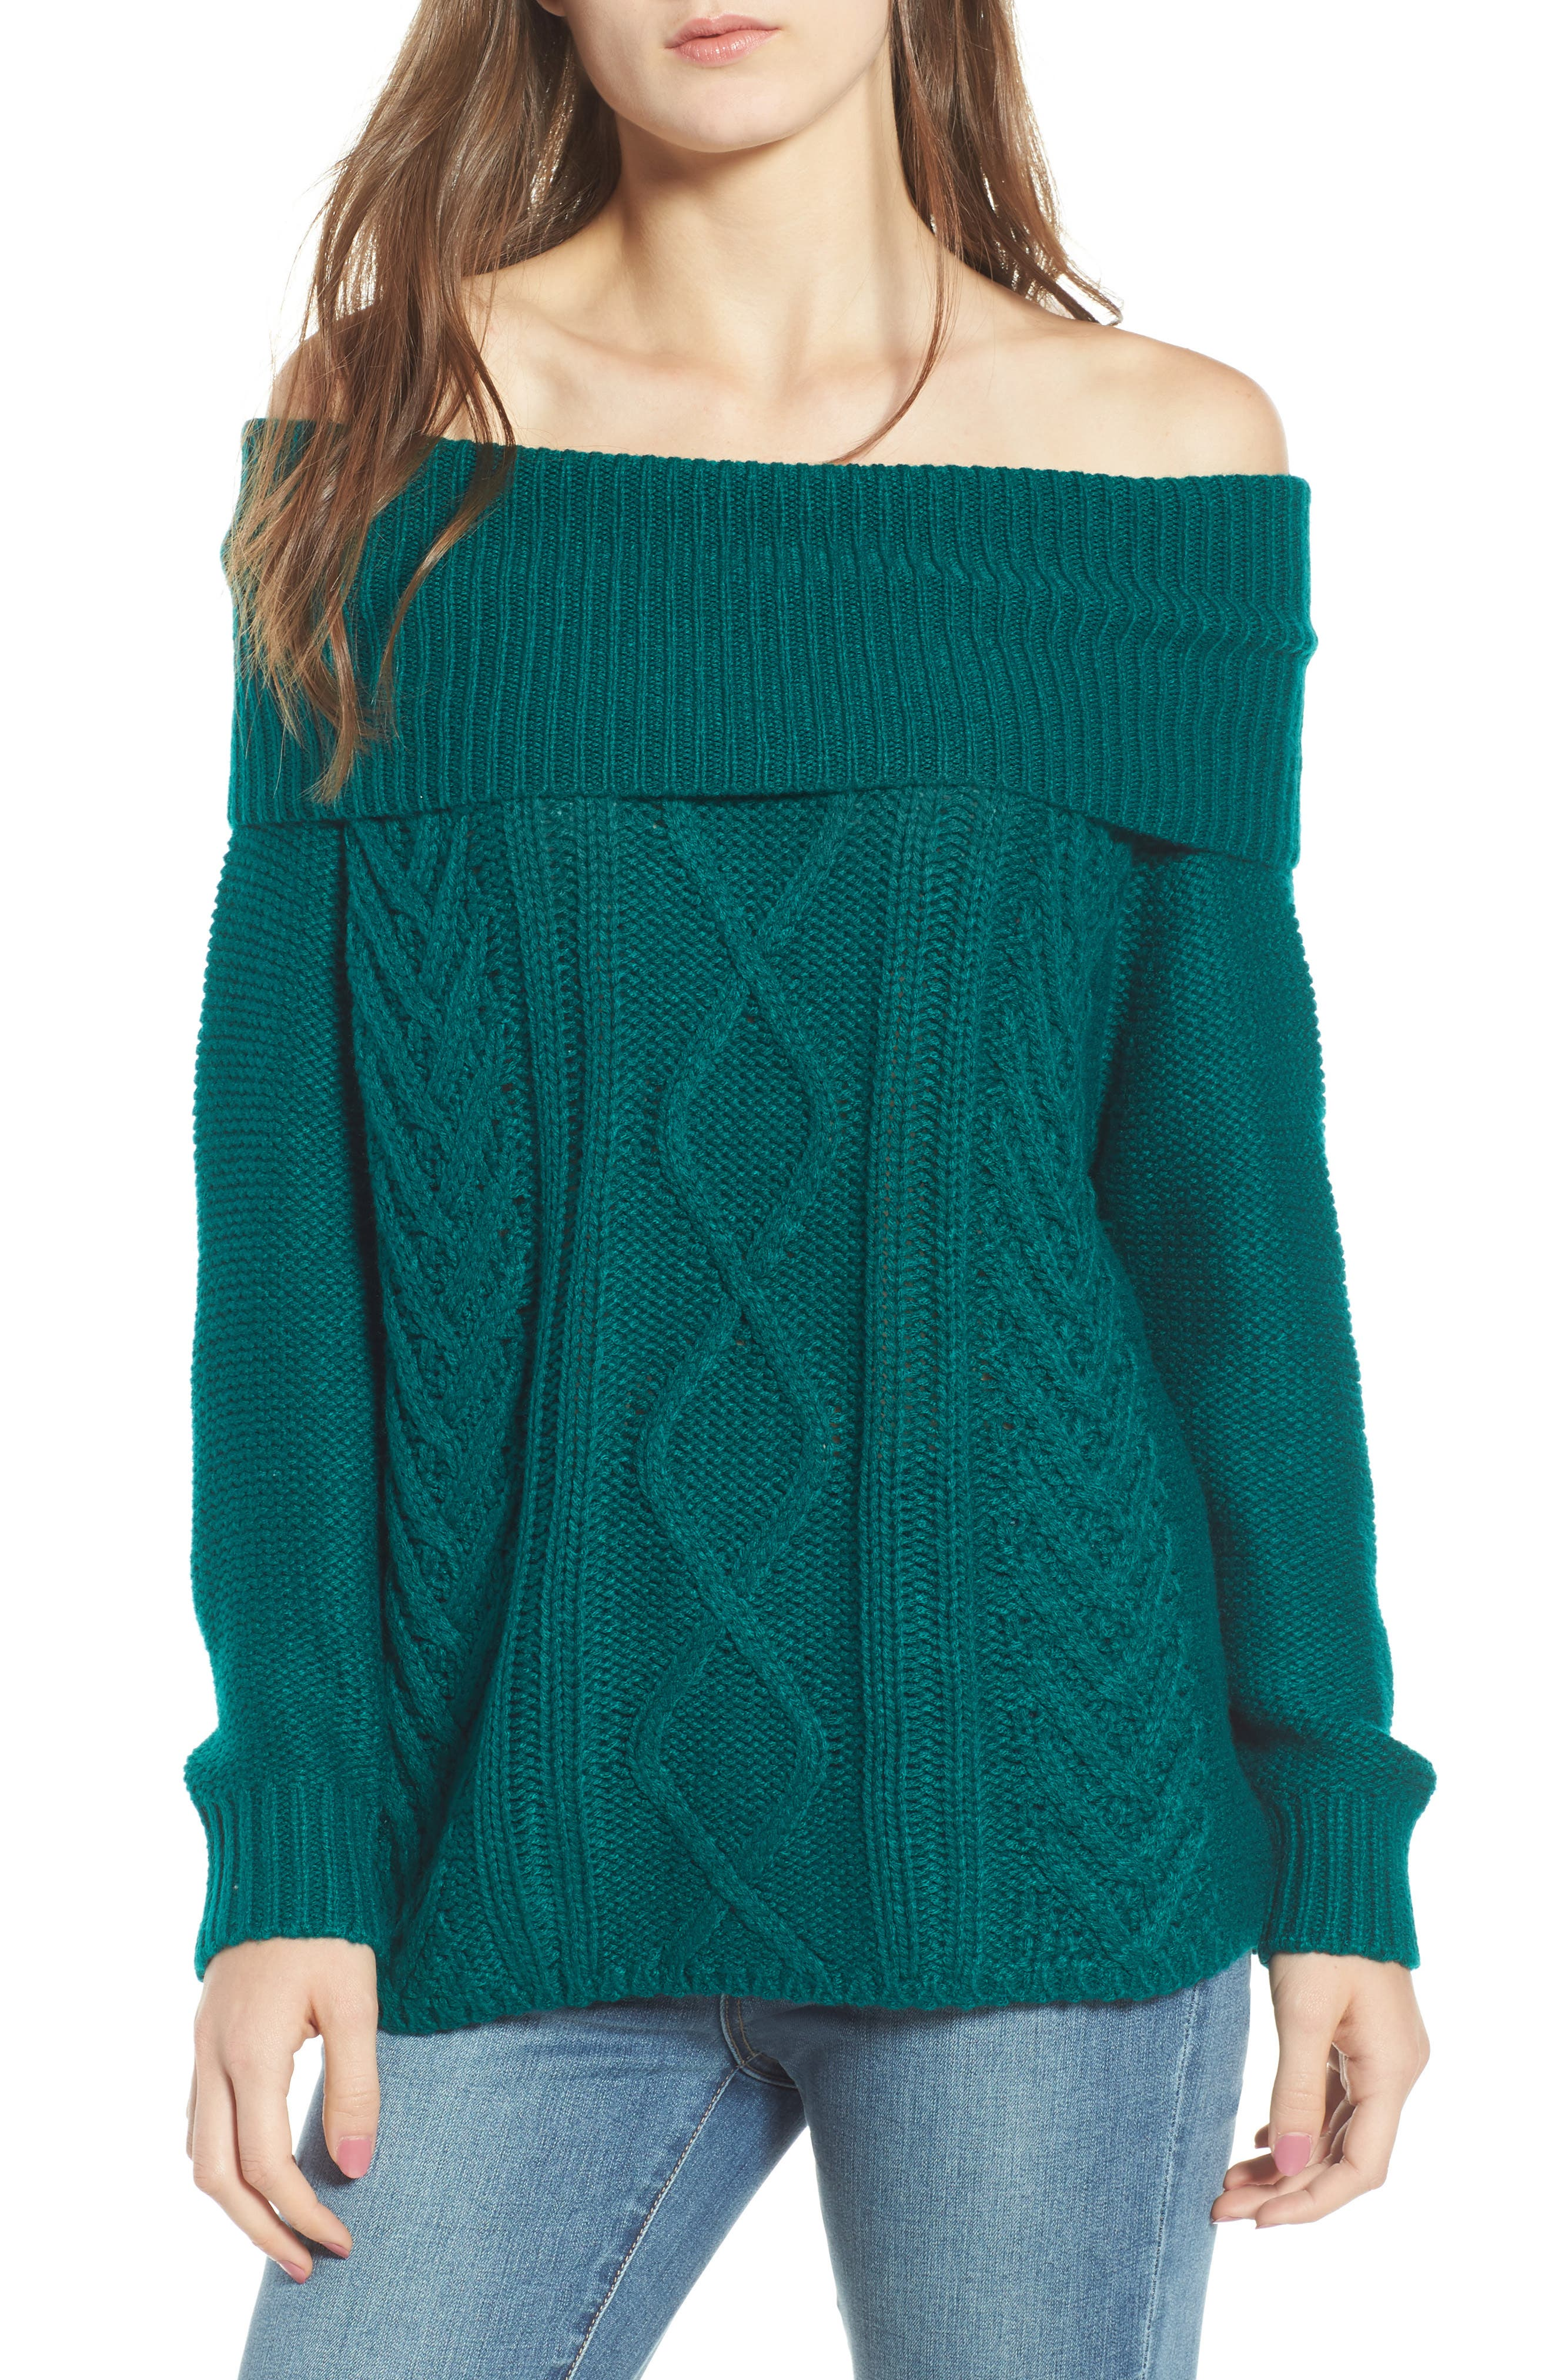 Off Shore Cable Knit Sweater,                         Main,                         color, 440